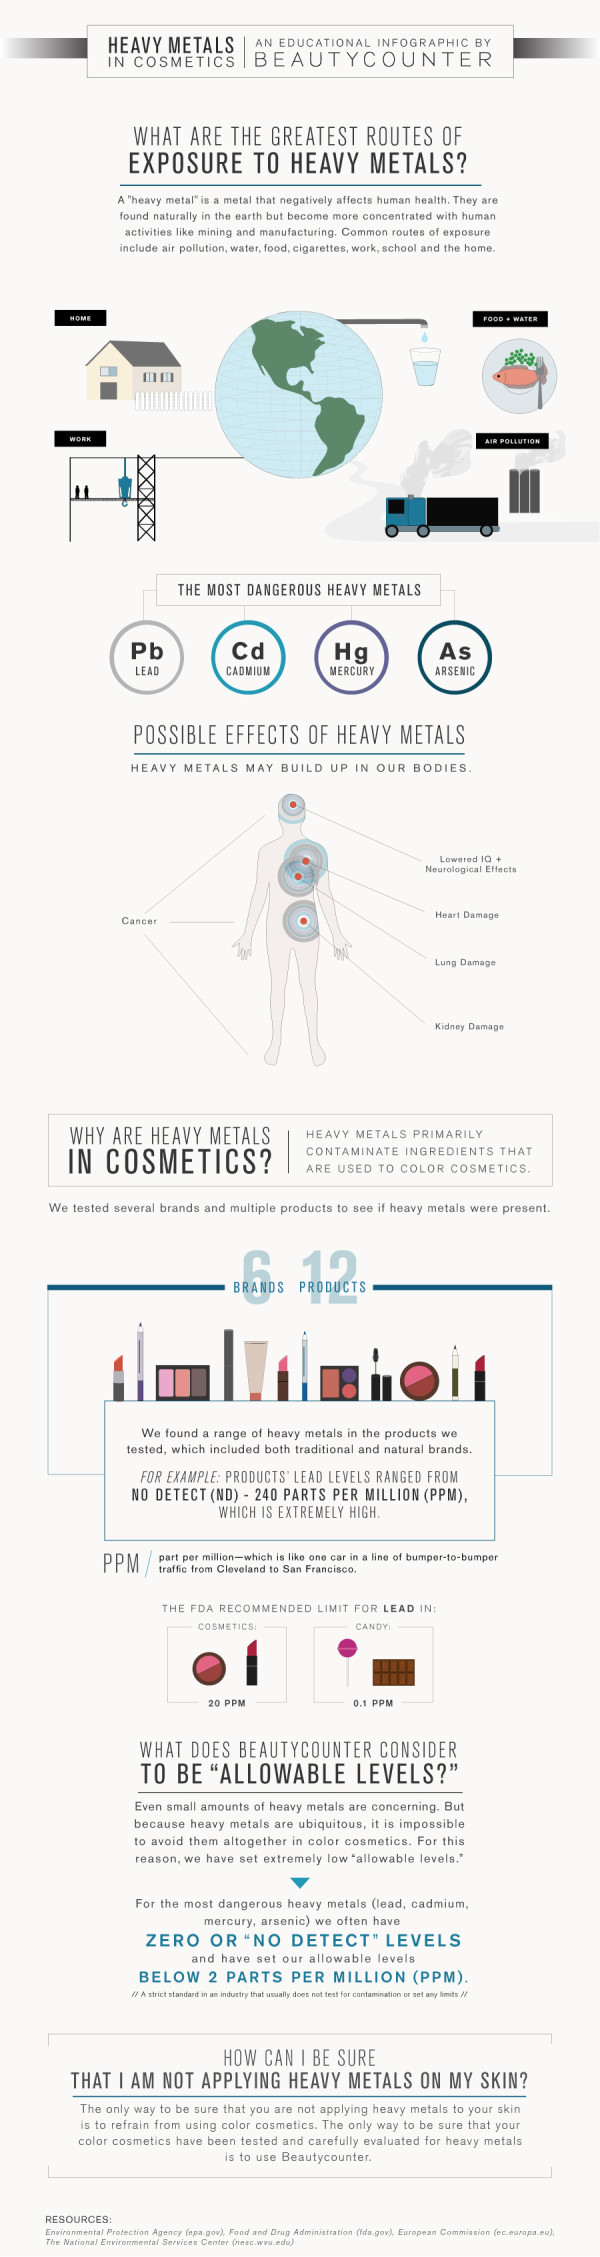 Heavy Metals in Beauty Products